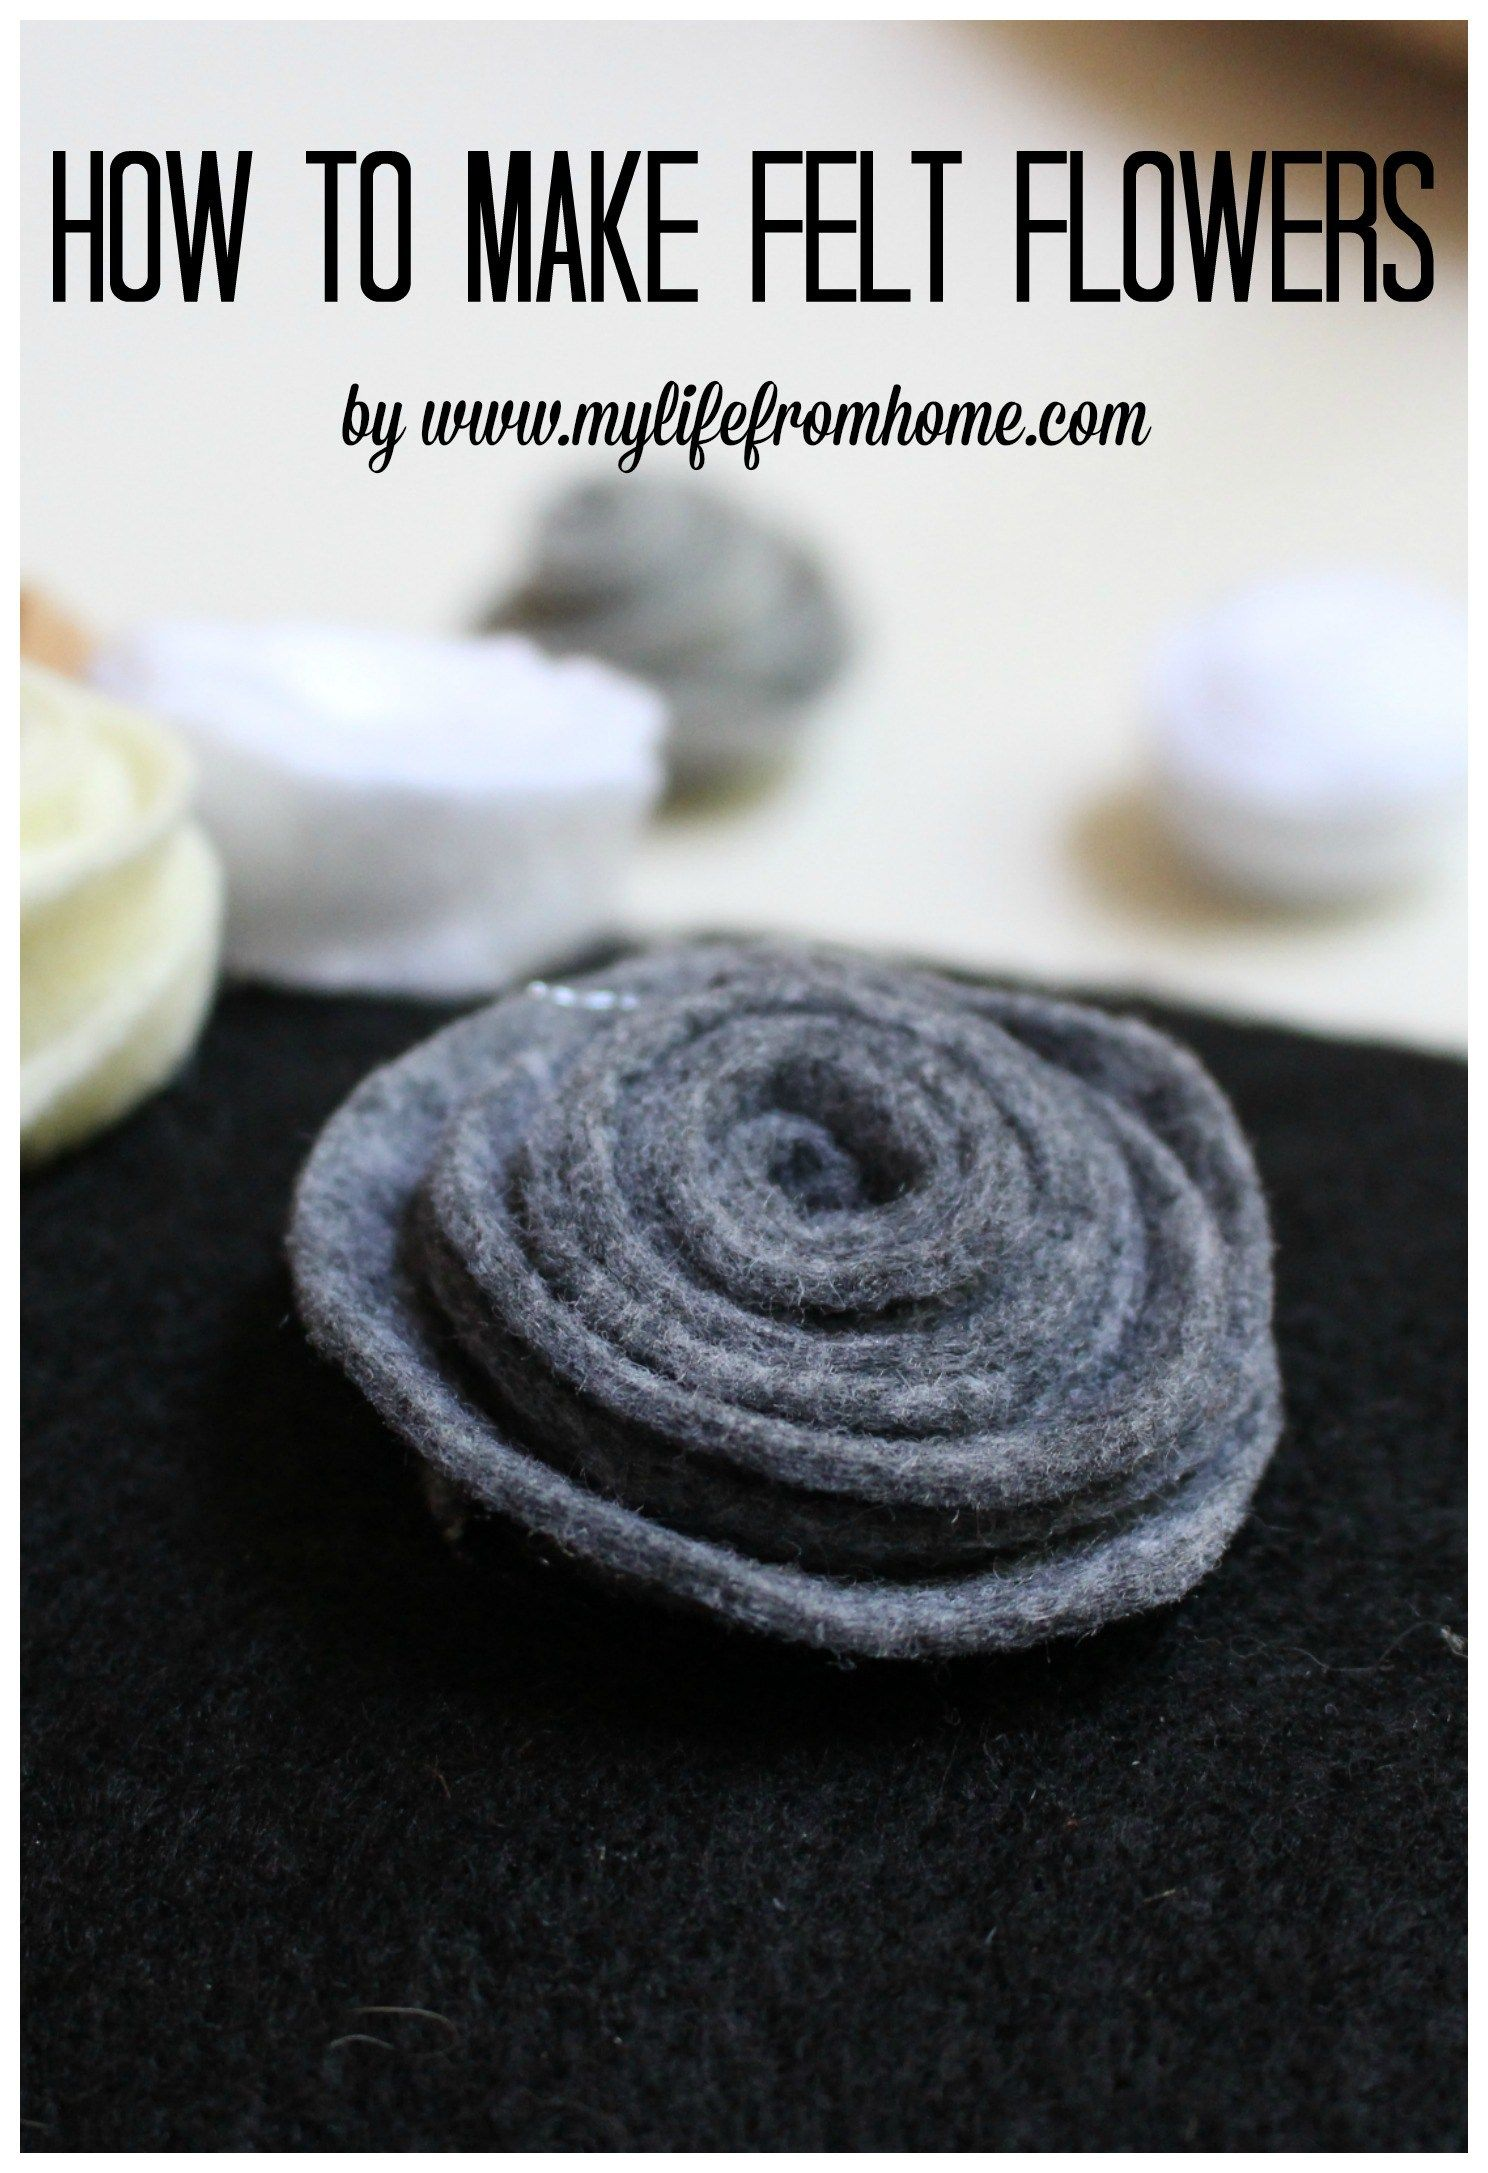 Do you love these felt flowers, but think they are too hard to do on your own?  Let me tell you, these are super simple to design and make.  Easy crafts anyone can do!  See the full tutorial at My Life From Home. How to Make Felt Flowers DIY by www.mylifefromhome.com